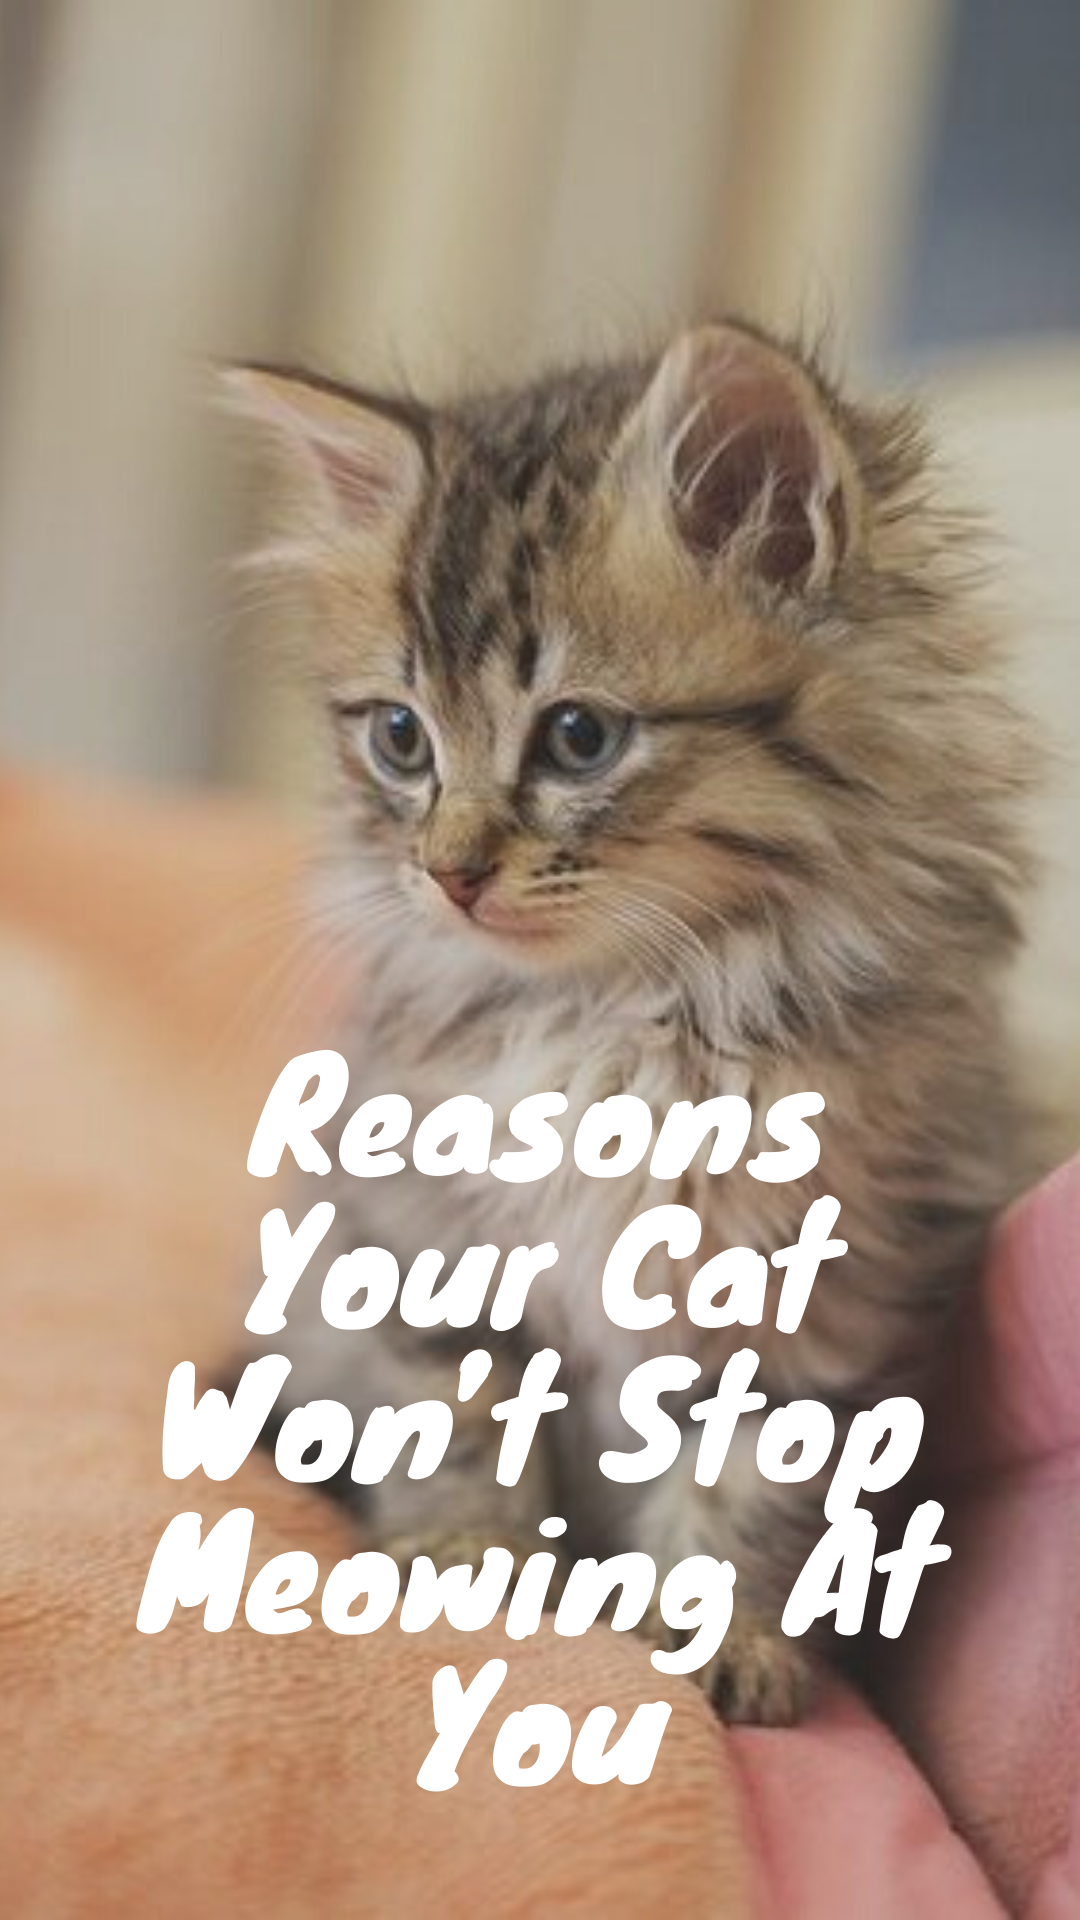 Cats Cat Catlover Catlovers Kitty Meow Kitten Pets Kittens World Catoftheday Cute Love Dogs Animals Pet Gatos Cat Cats Funny Cat Memes Cat Day